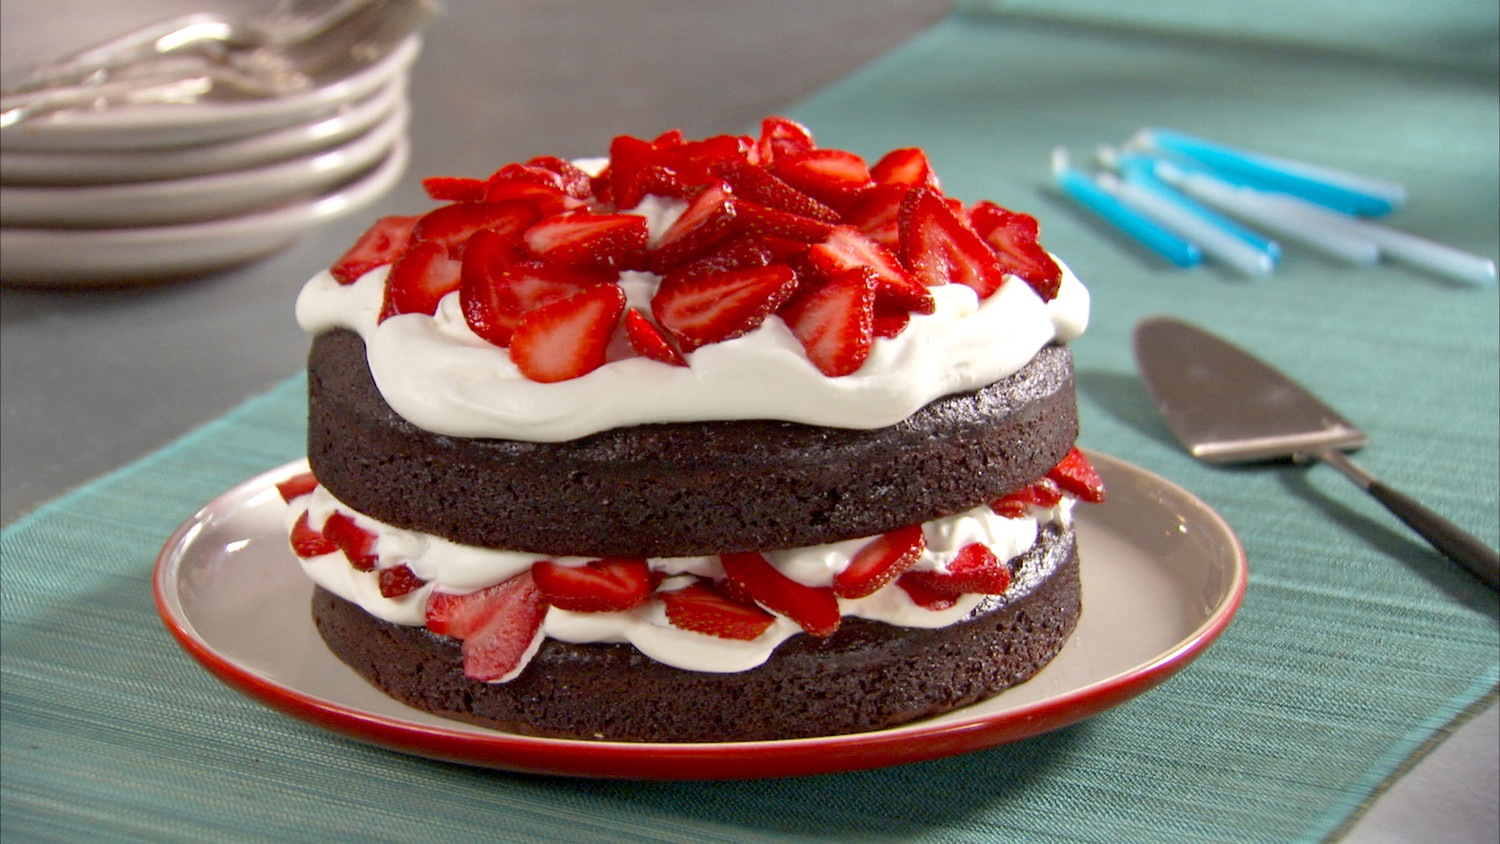 ... Strawberry Cream Cake chocolate cake with whipped cream and